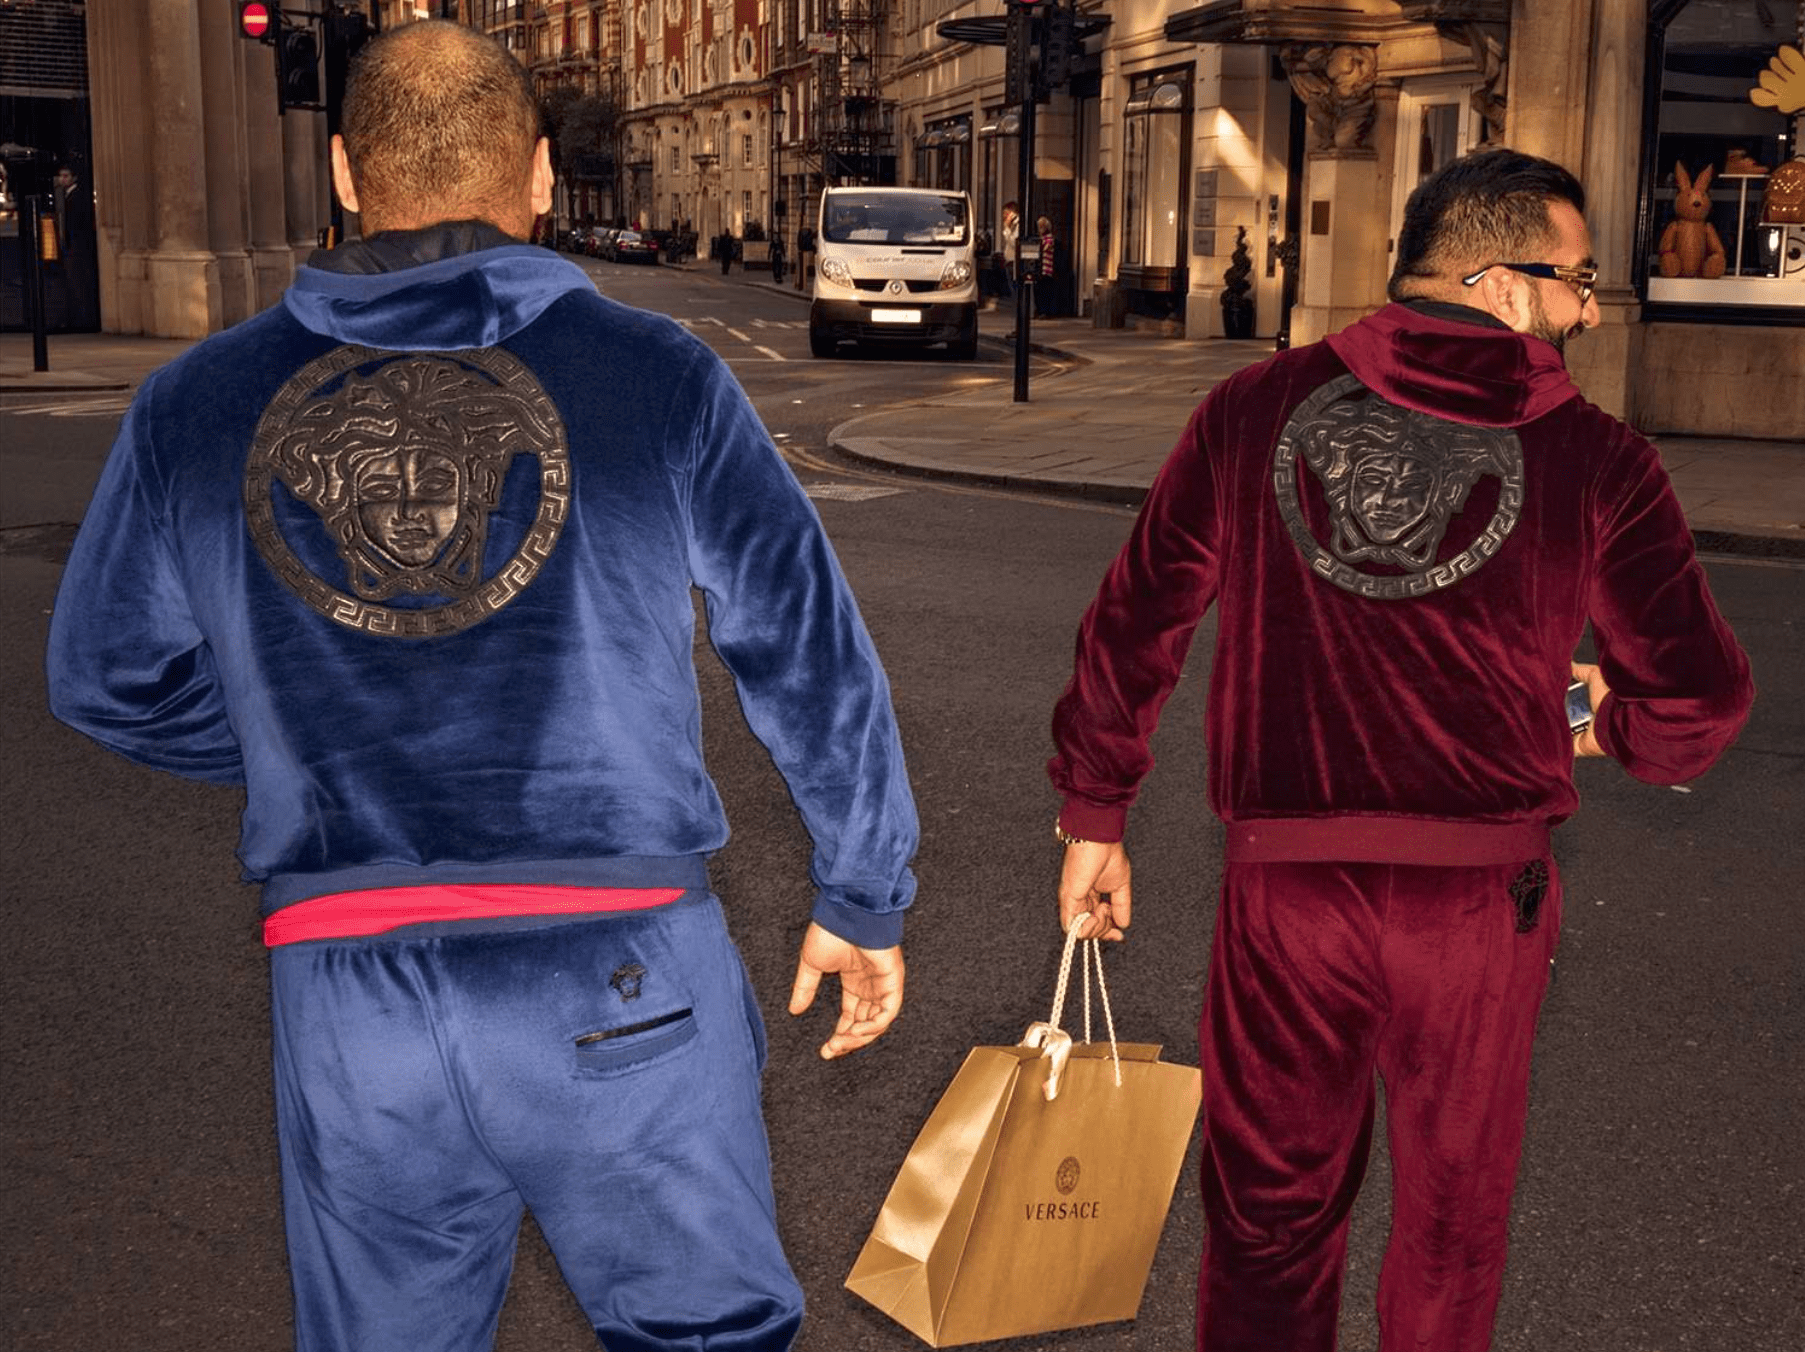 From £1000 Versace tracksuits to yapping handbag pooches: a